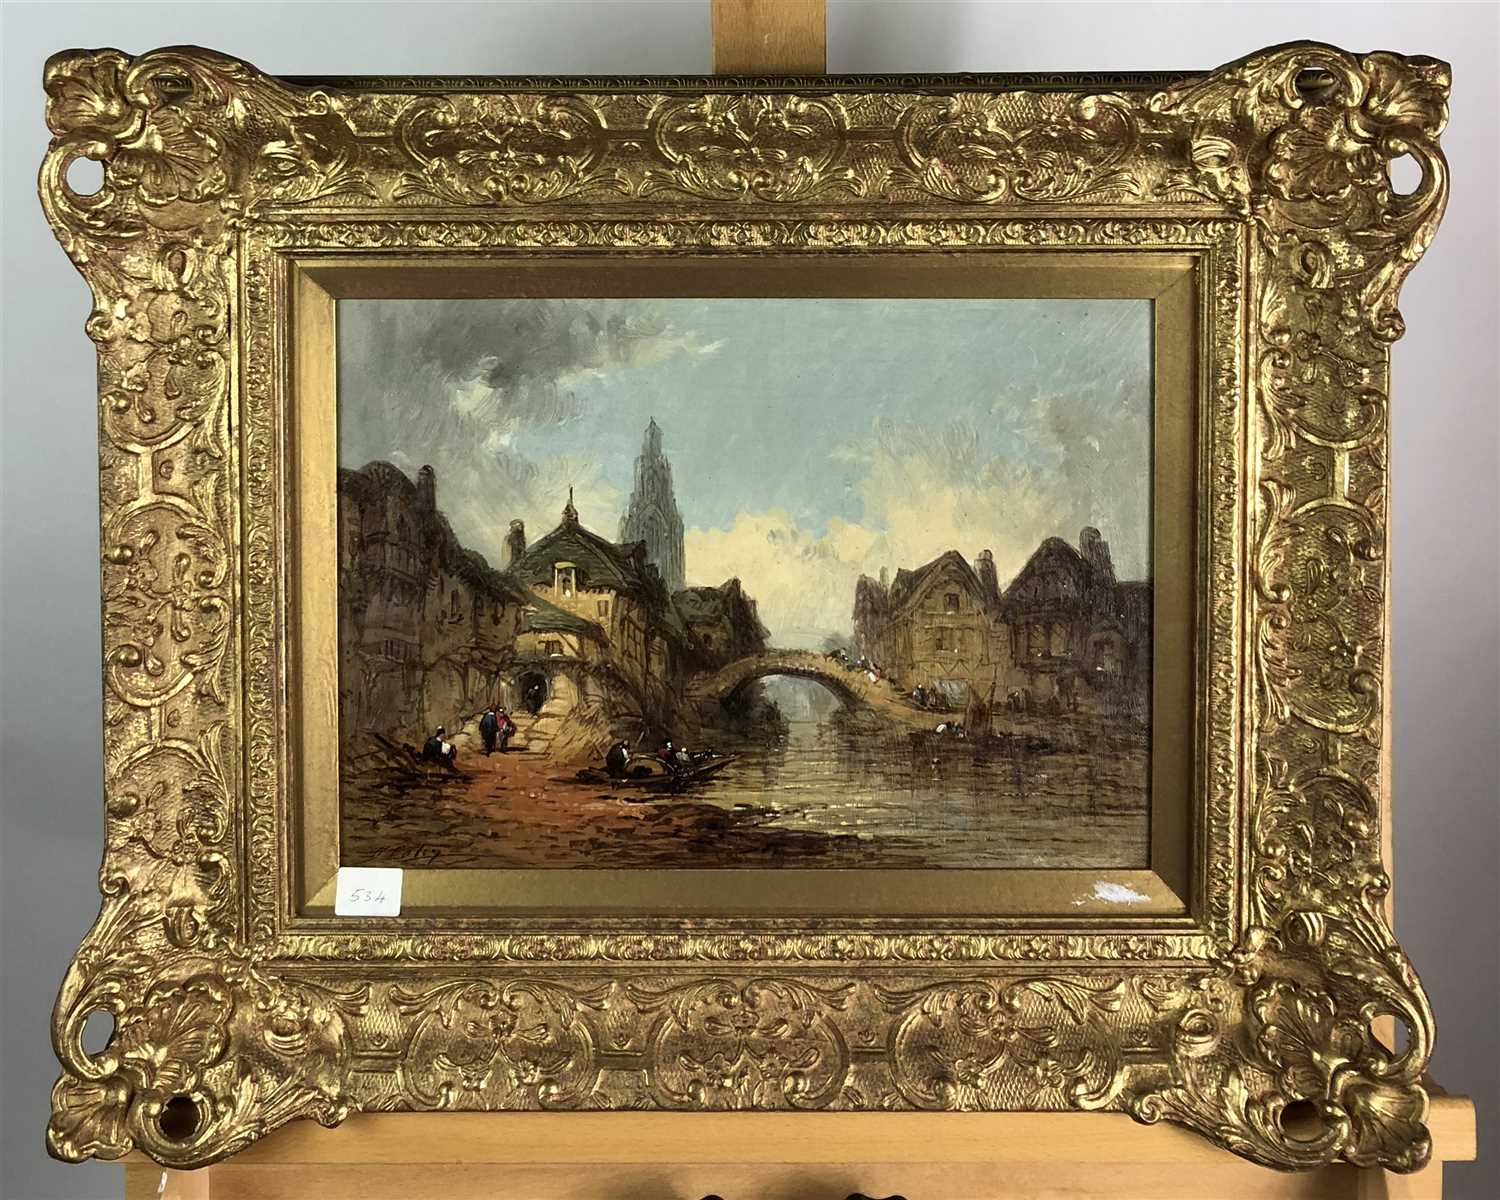 Lot 75-Attributed to Felice Auguste Rezia, A continental town scene with river